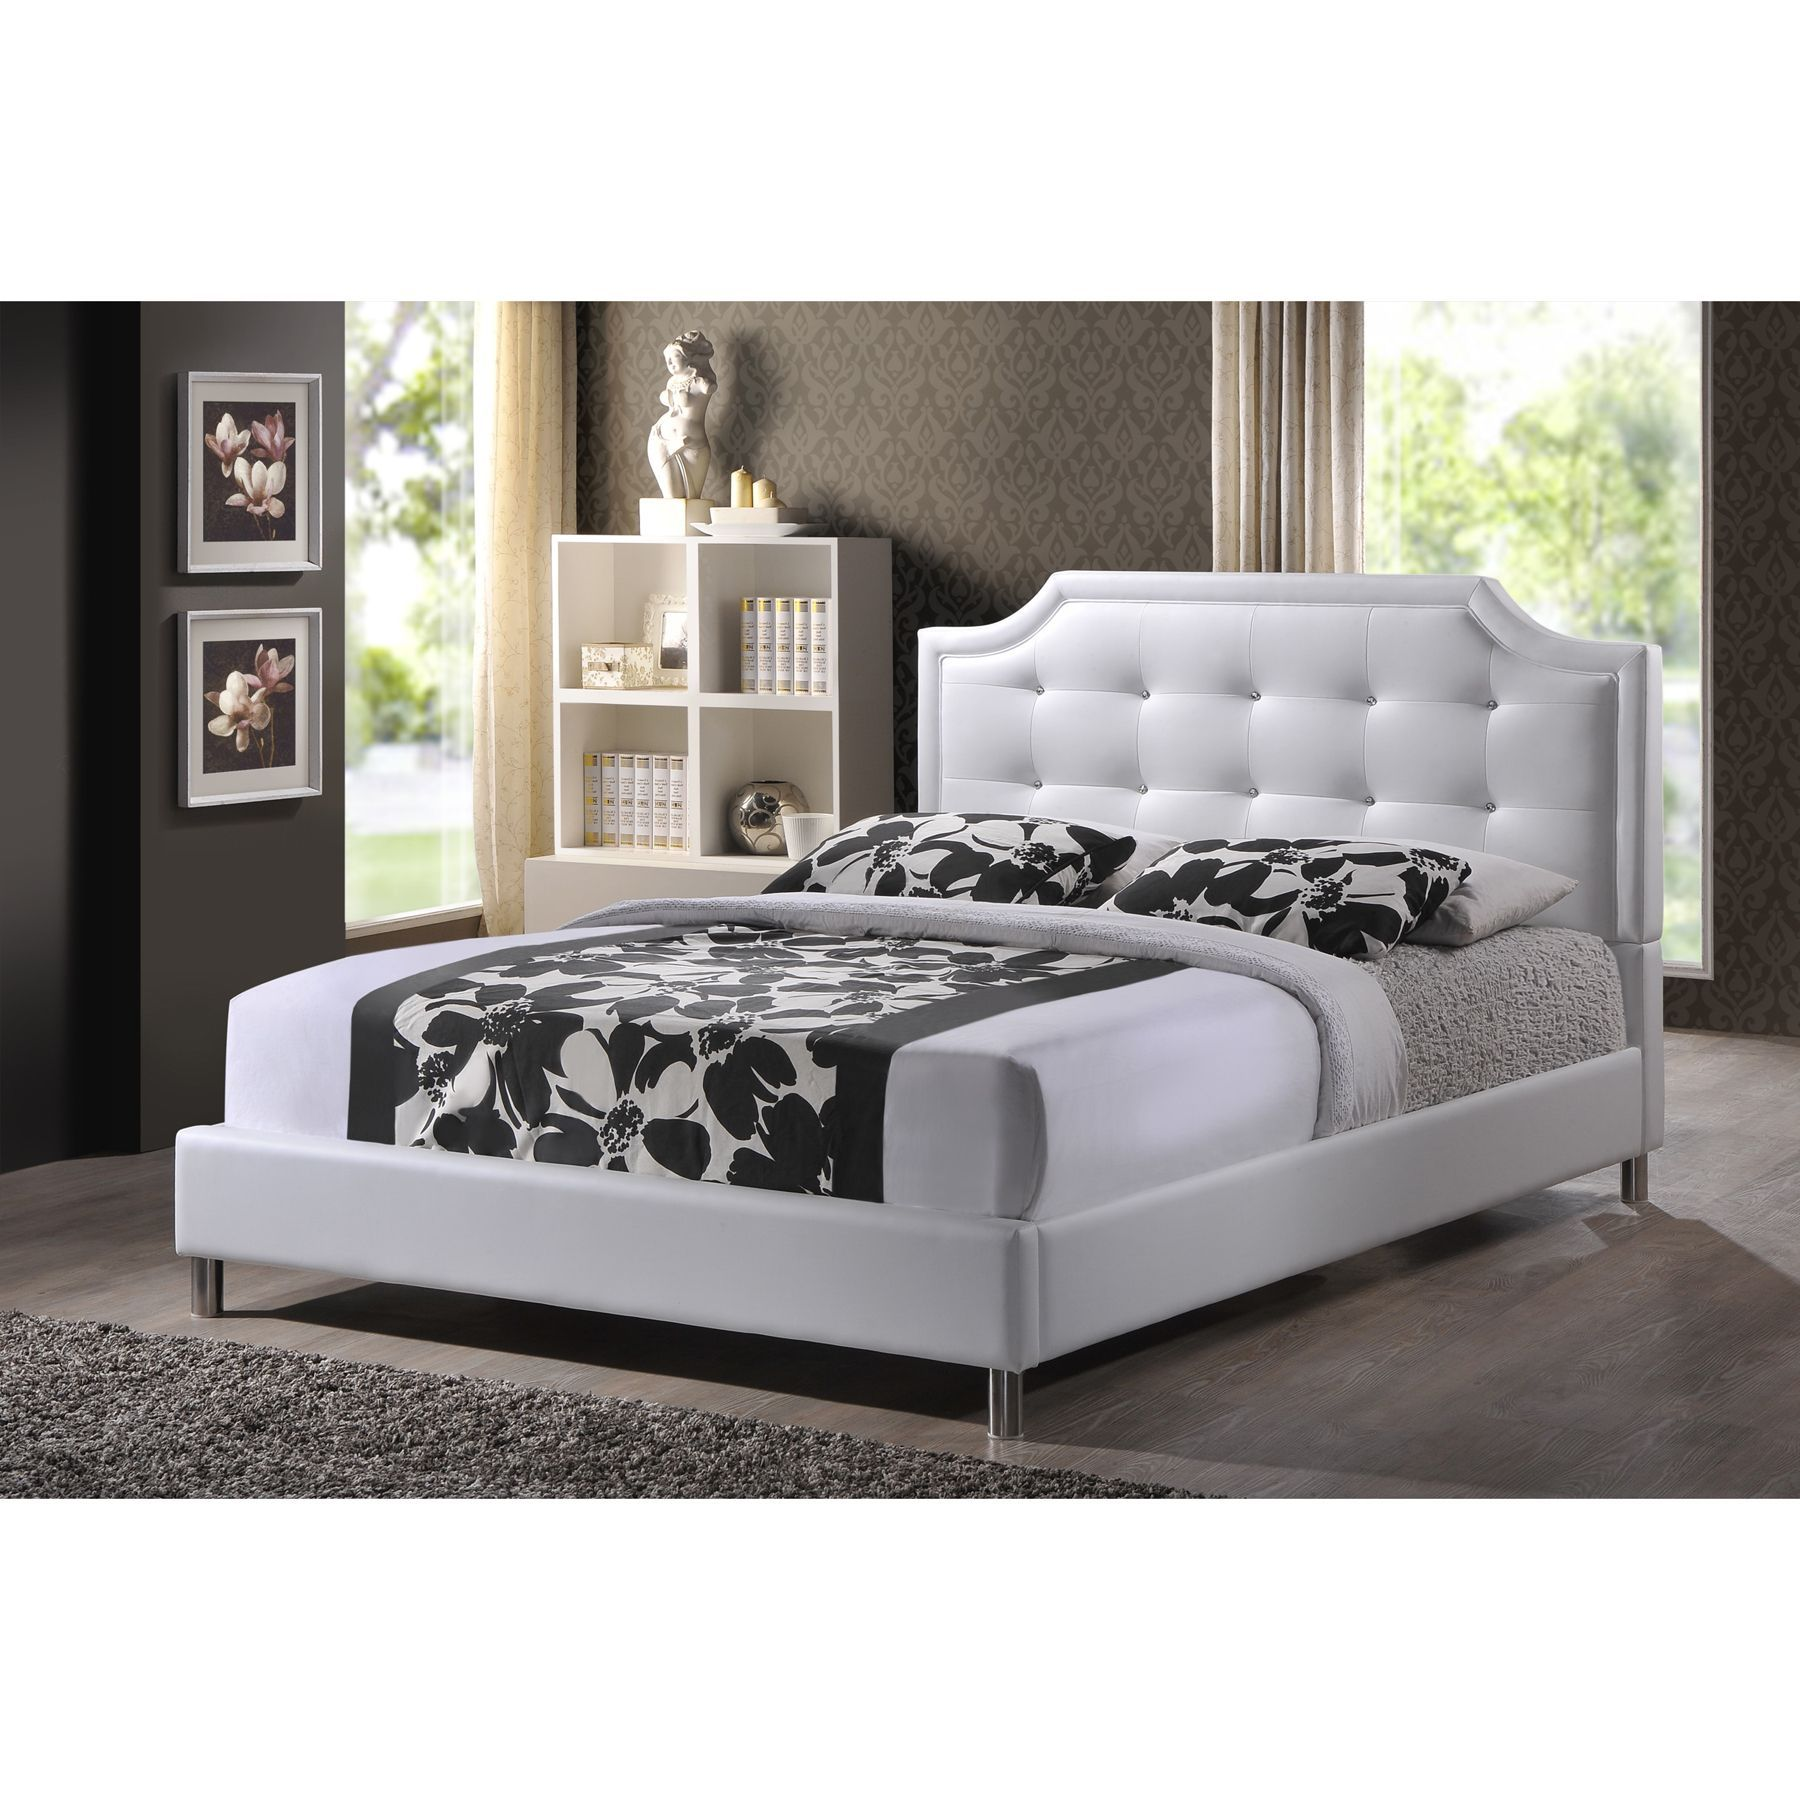 White modern platform bed - Clean Crisp And Contemporary Is The Carlotta Designer Bed Frame Soft White Faux